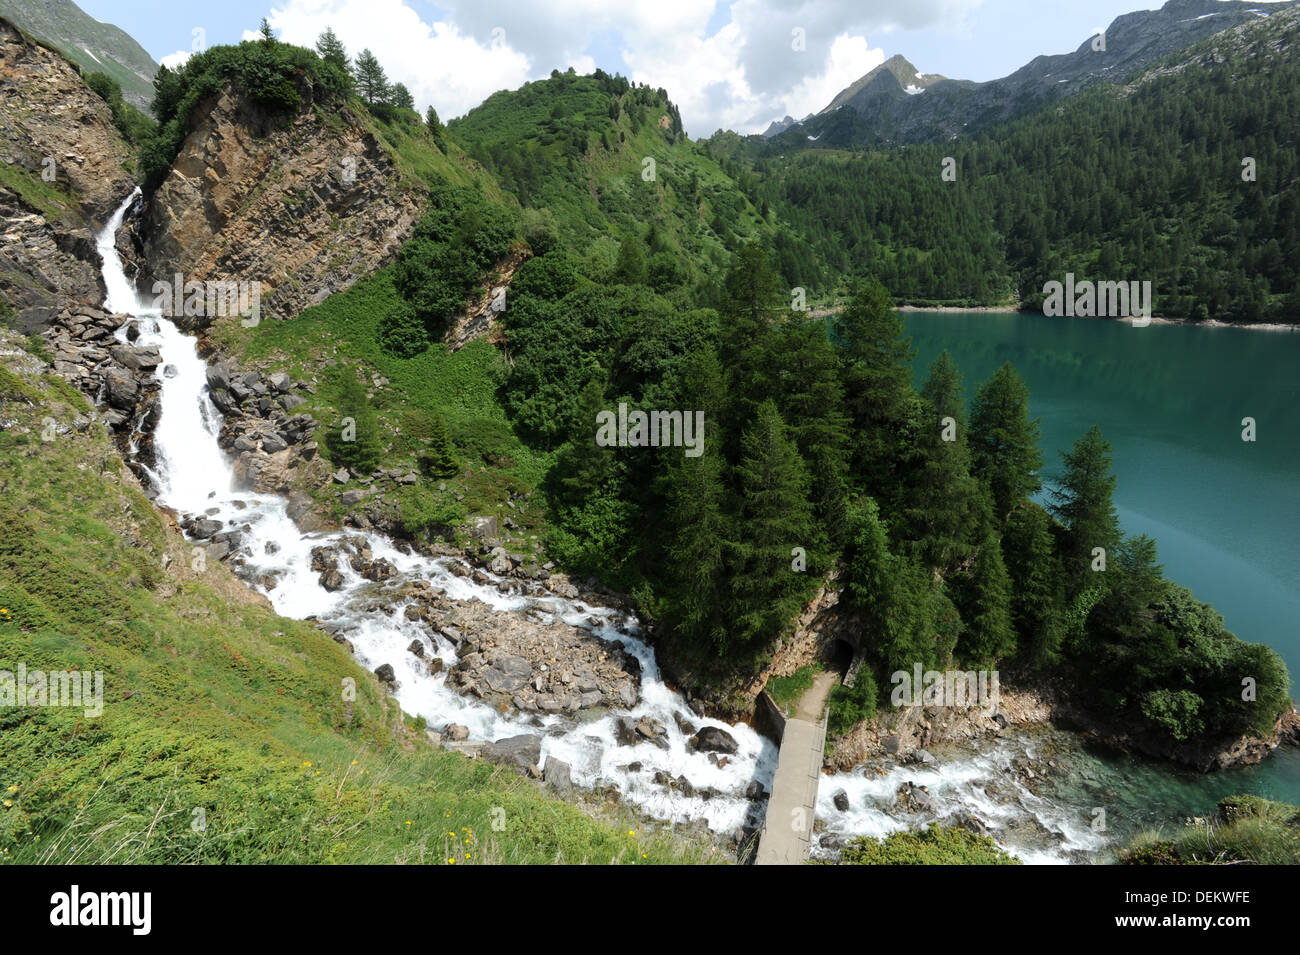 River to lake Ritom on the Swiss alps Stock Photo